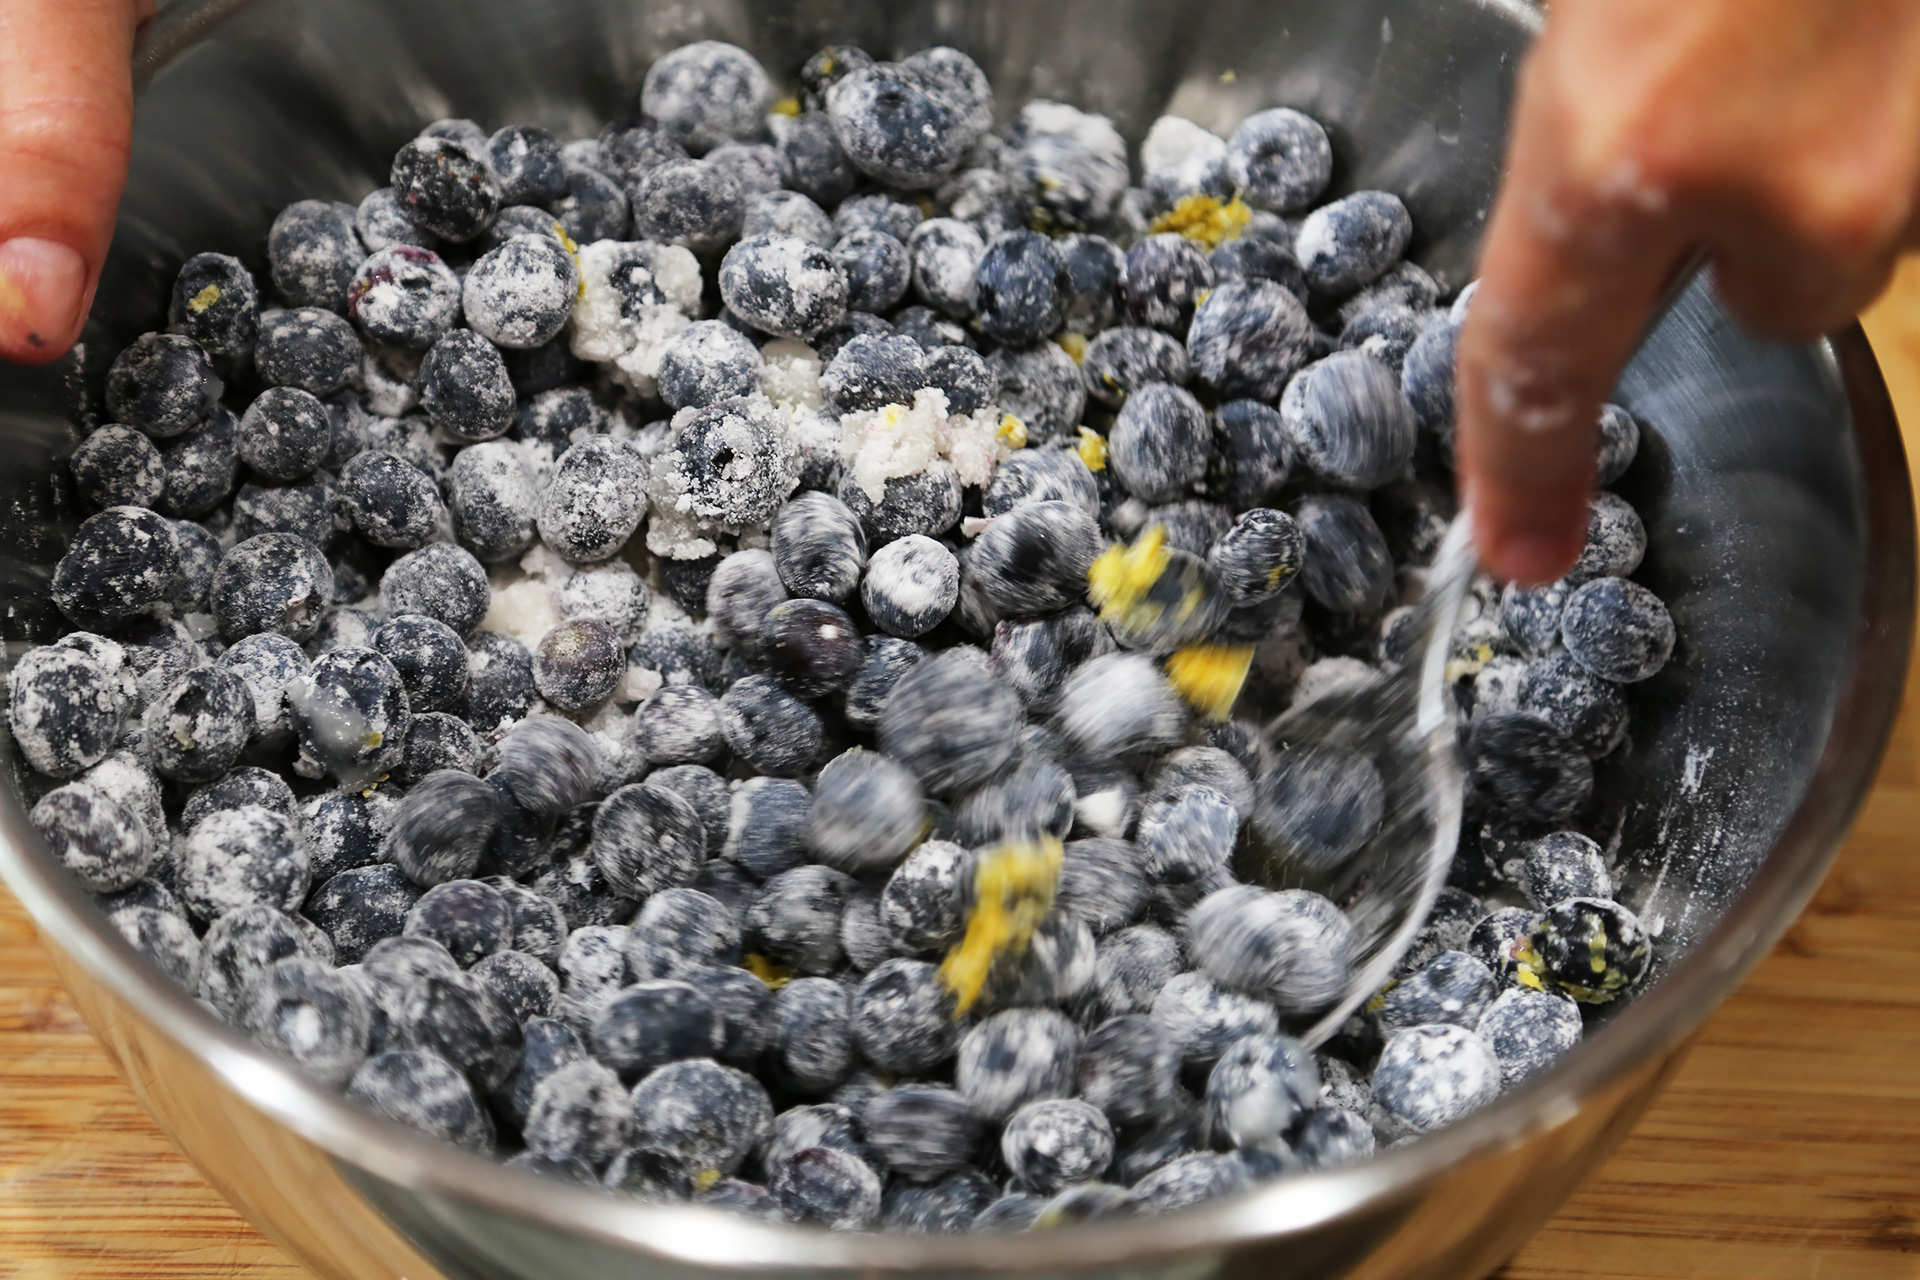 To make the filling, in a bowl, toss together the blueberries, sugar, tapioca flour, lemon zest, and lemon juice until well combined.